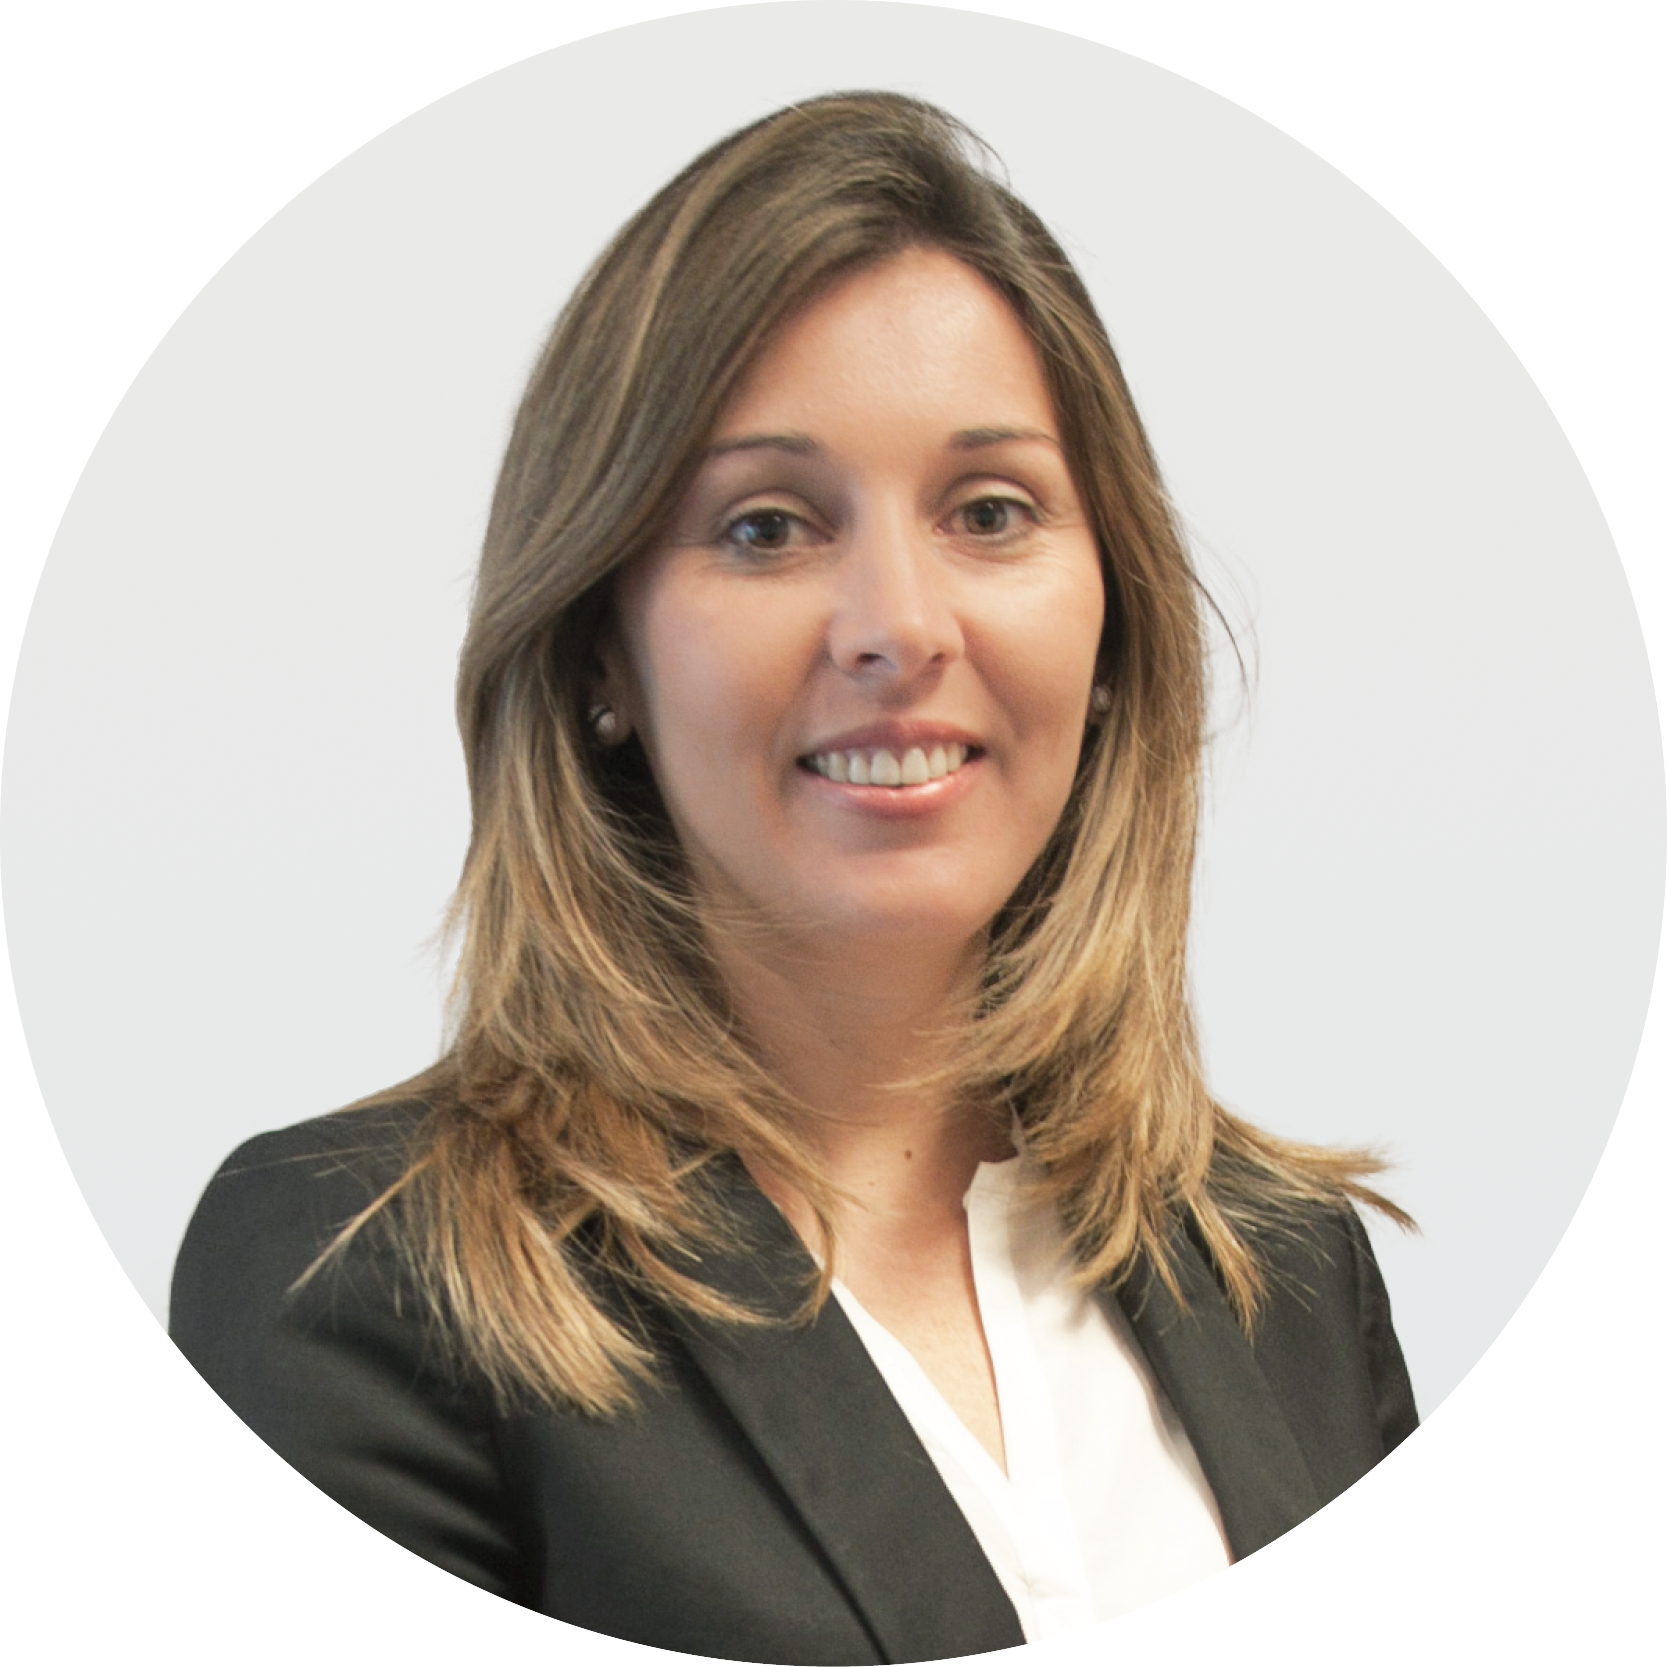 Responsable del área Corporate Finance Bárbara Pitarque